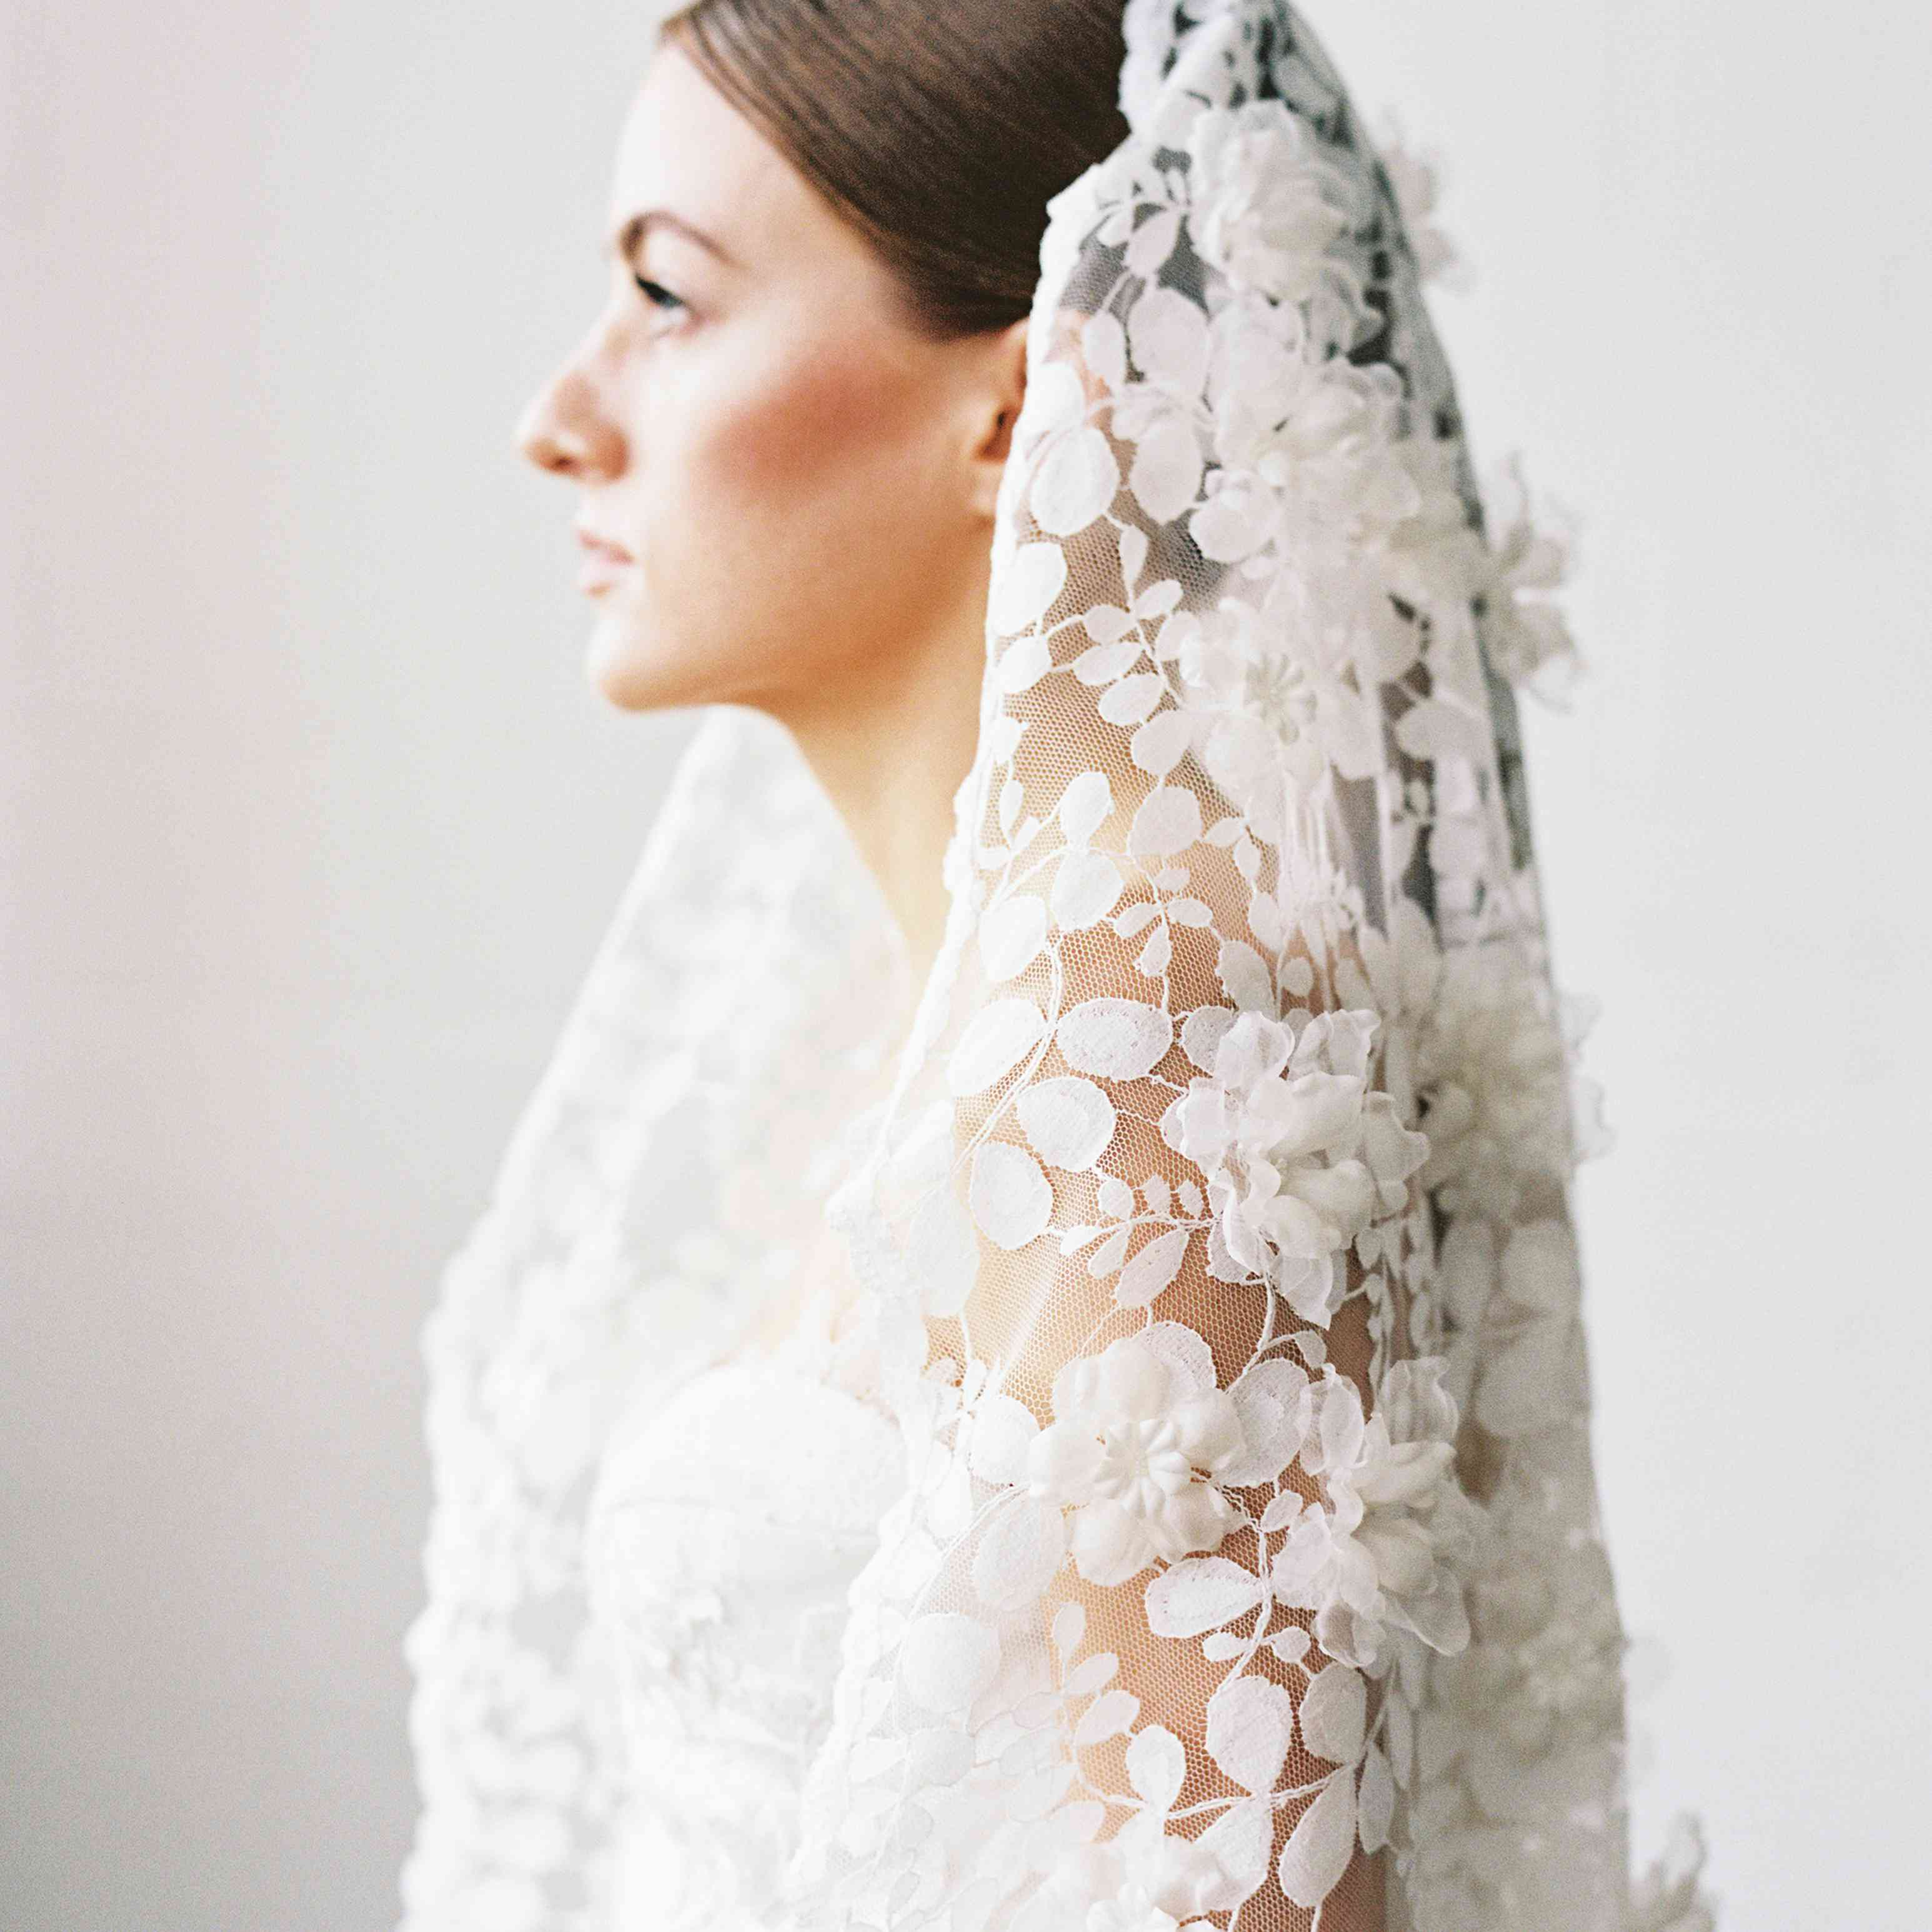 d45ff3a6e4 17 of the Prettiest Wedding Veils from Etsy for Every Bridal Style